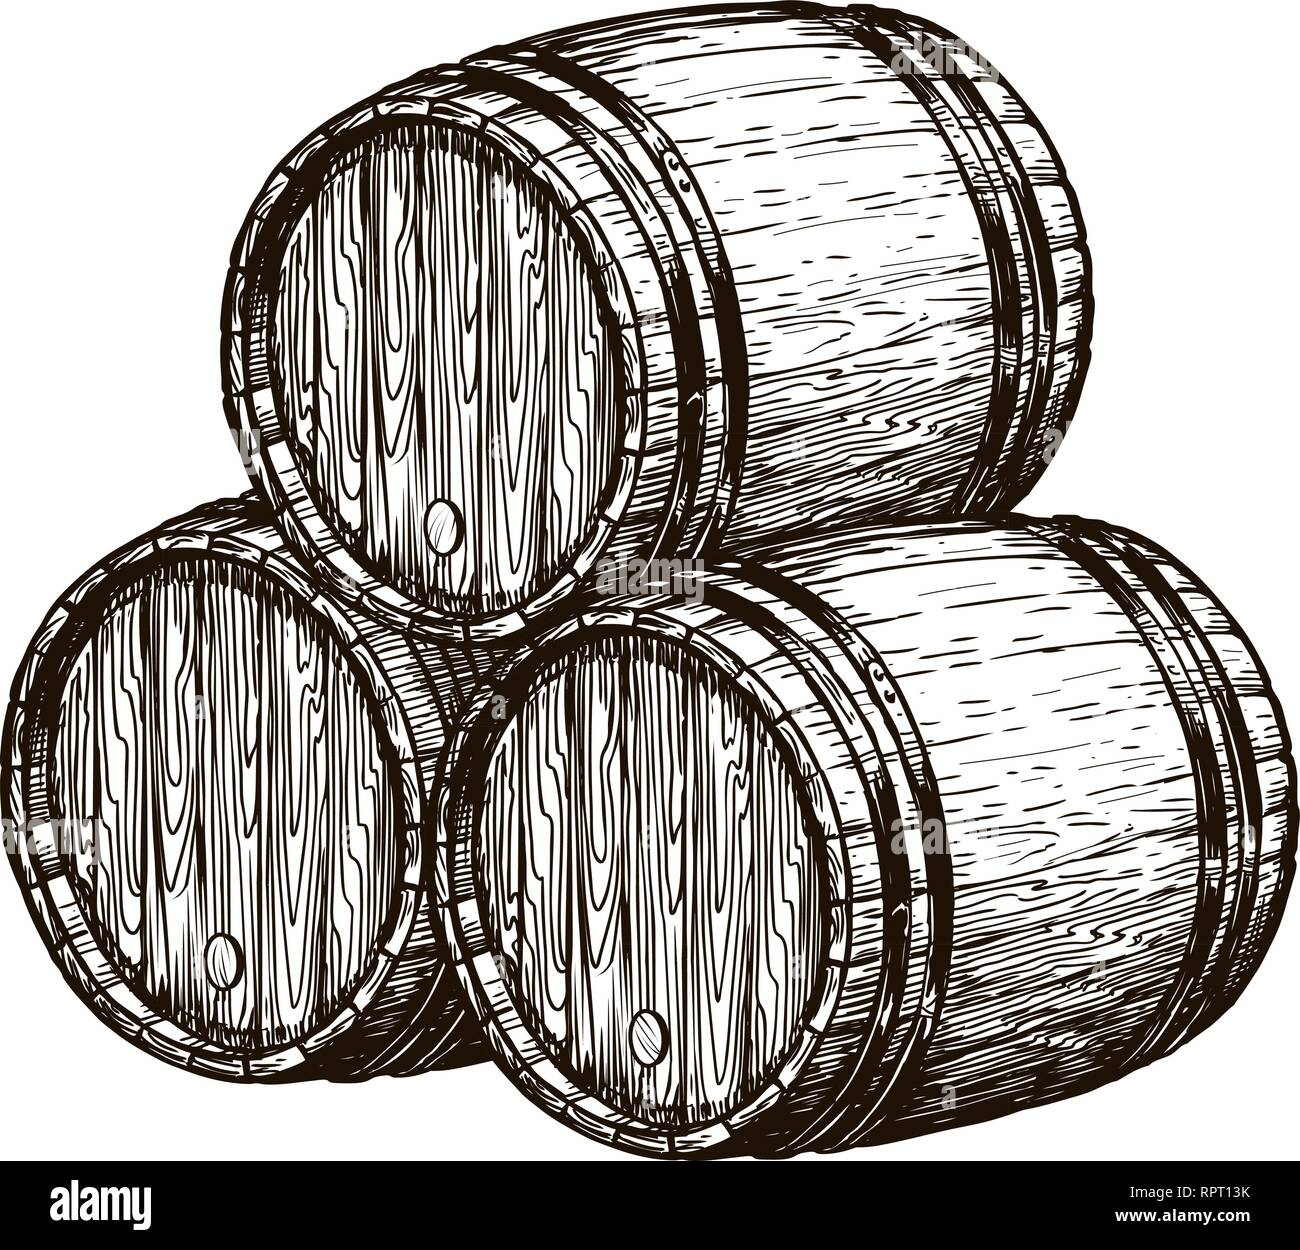 Wooden wine barrels. Winemaking, wine cellar, alcoholic drink sketch. Hand drawn vintage vector illustration Stock Vector